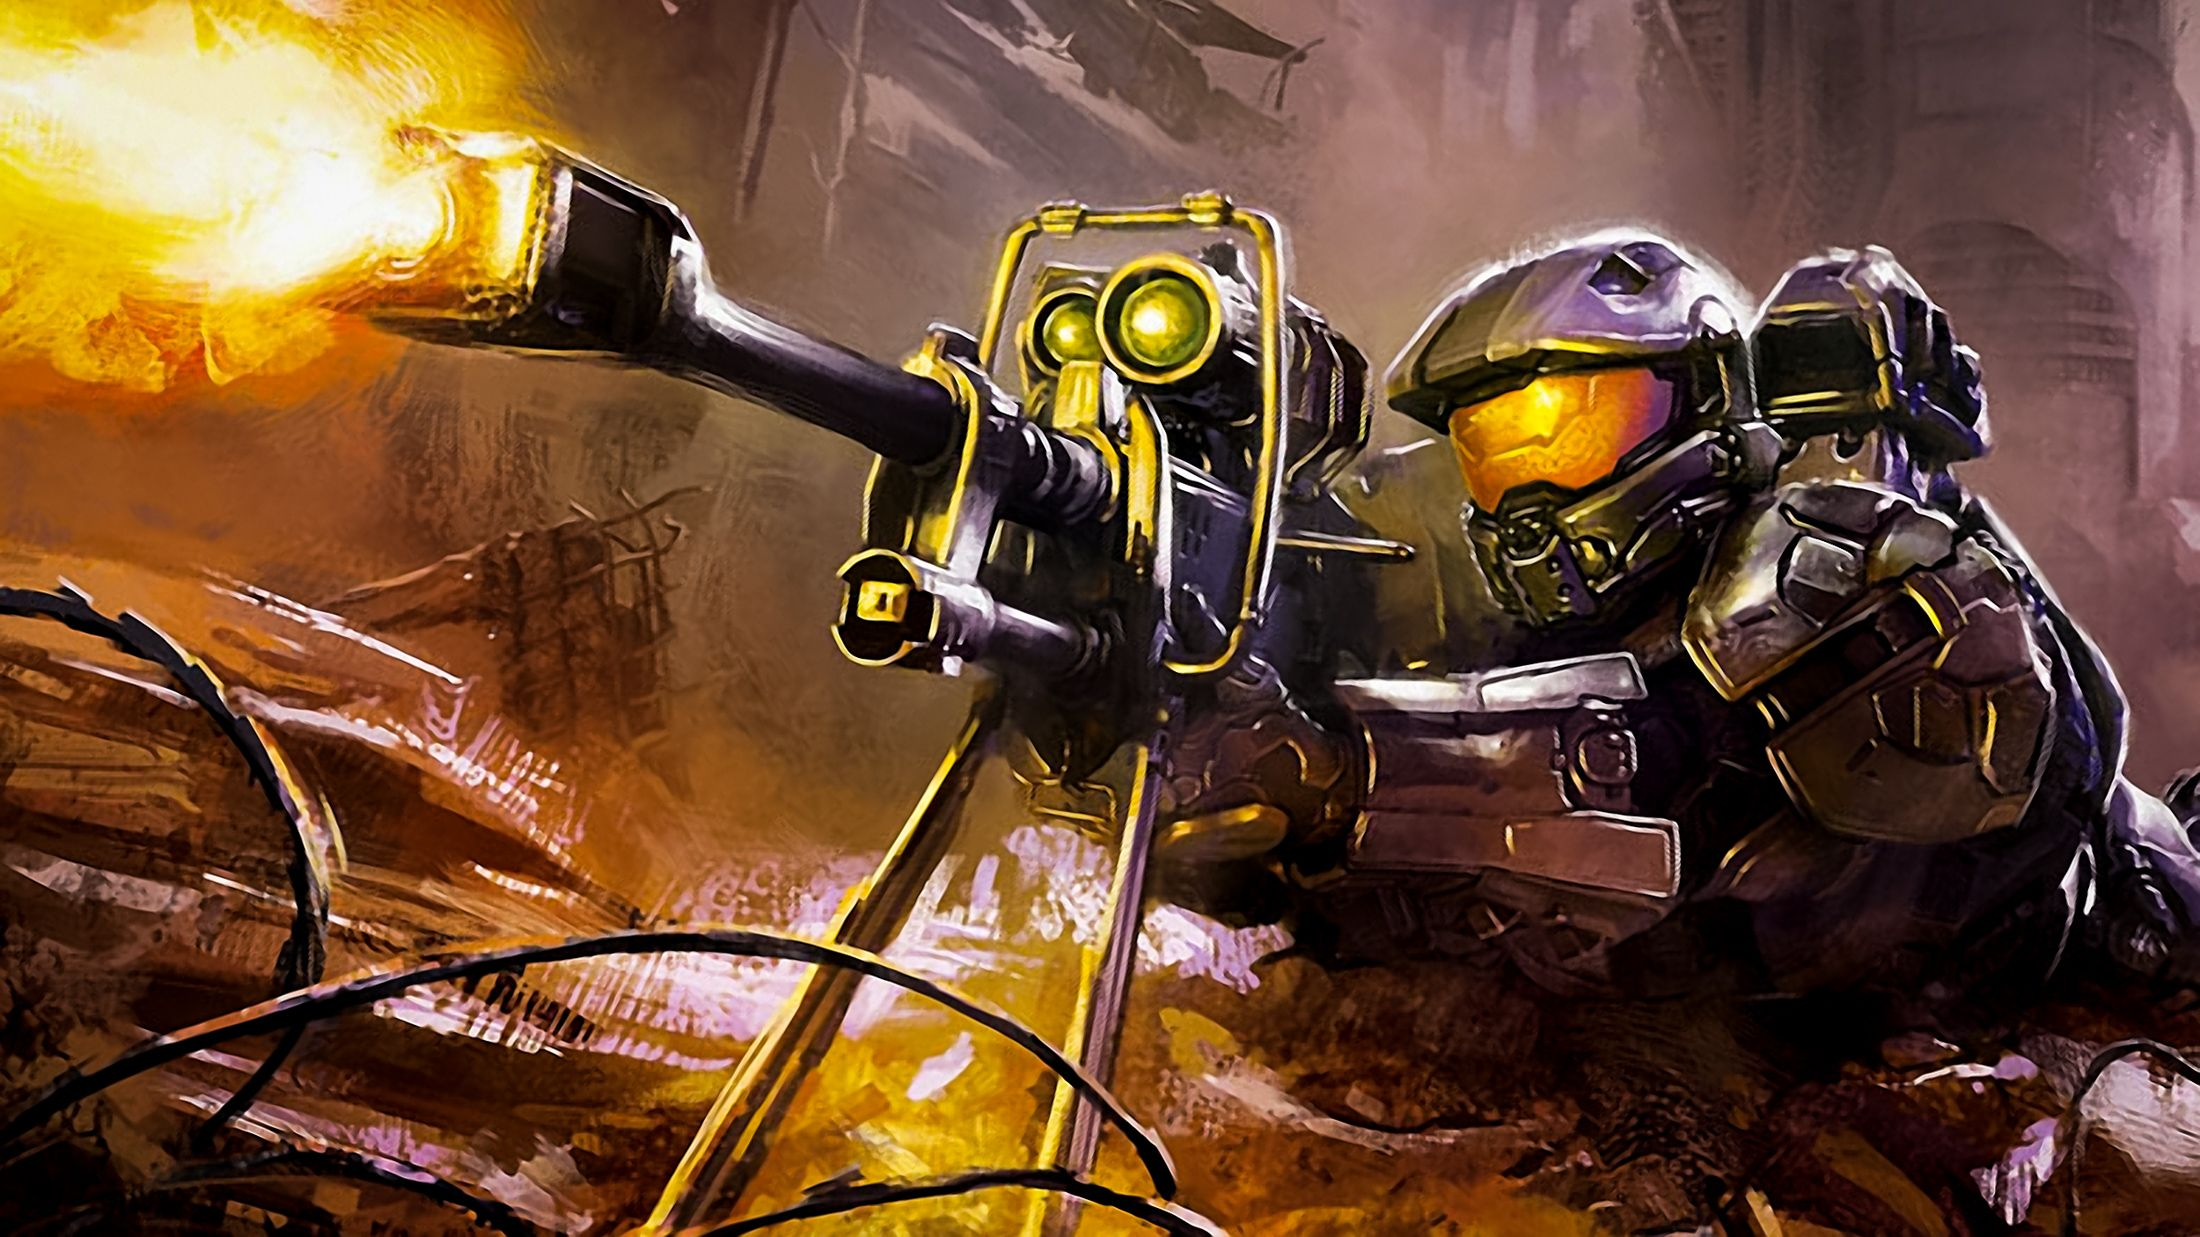 Halo Master Chief Wallpaper Google Search Halo Backgrounds